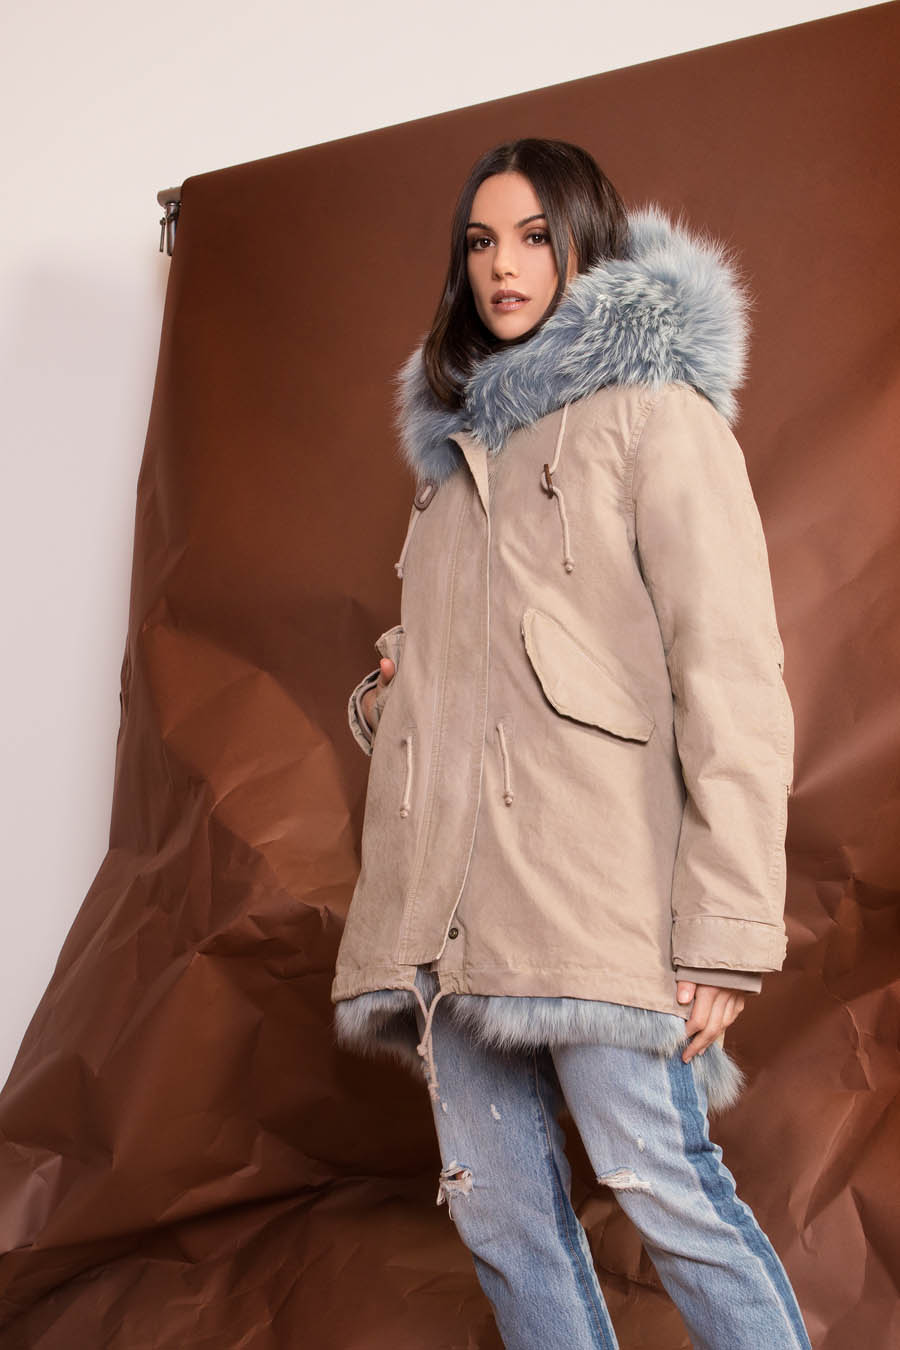 PK19263C 0216 02 gold rush woman parka fur sand - Fall Winter 2019-20